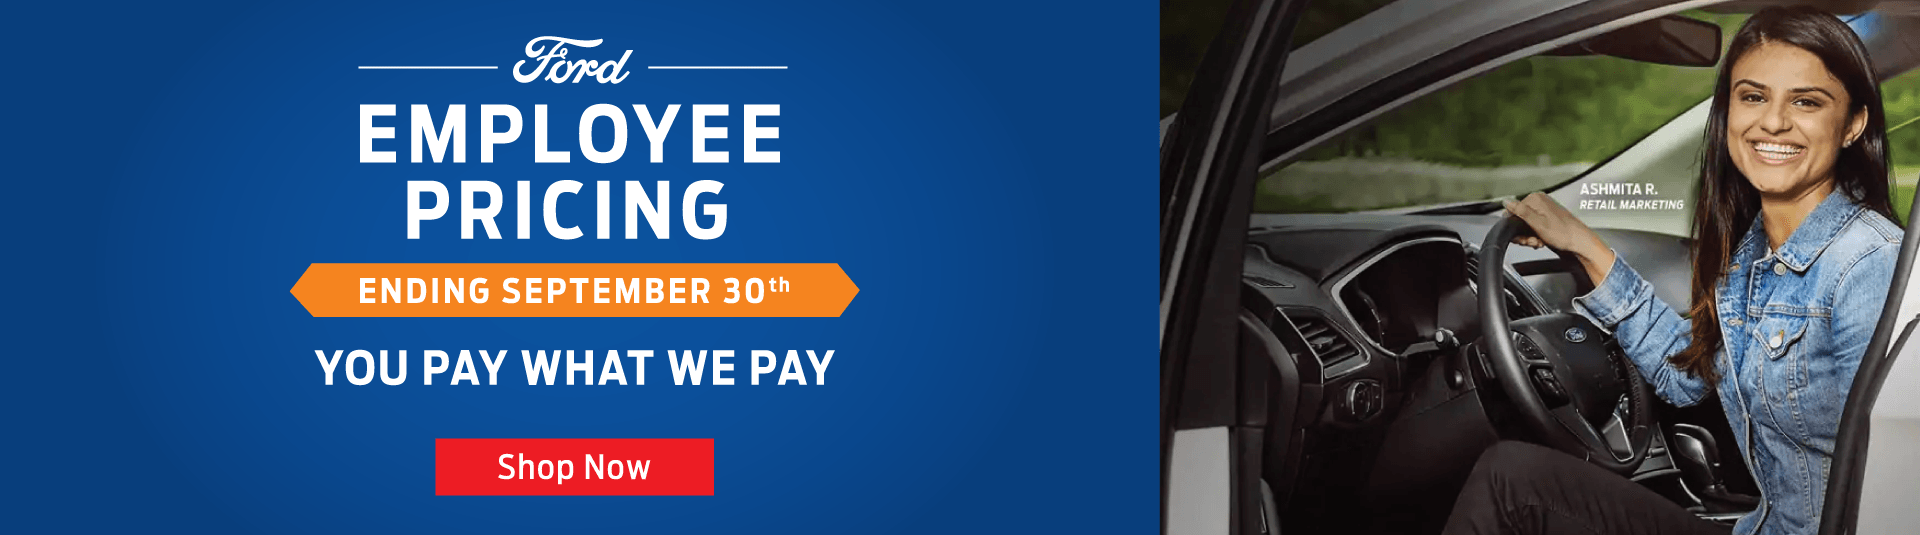 Ford-Employee-Pricing-ENDS-SEP-30